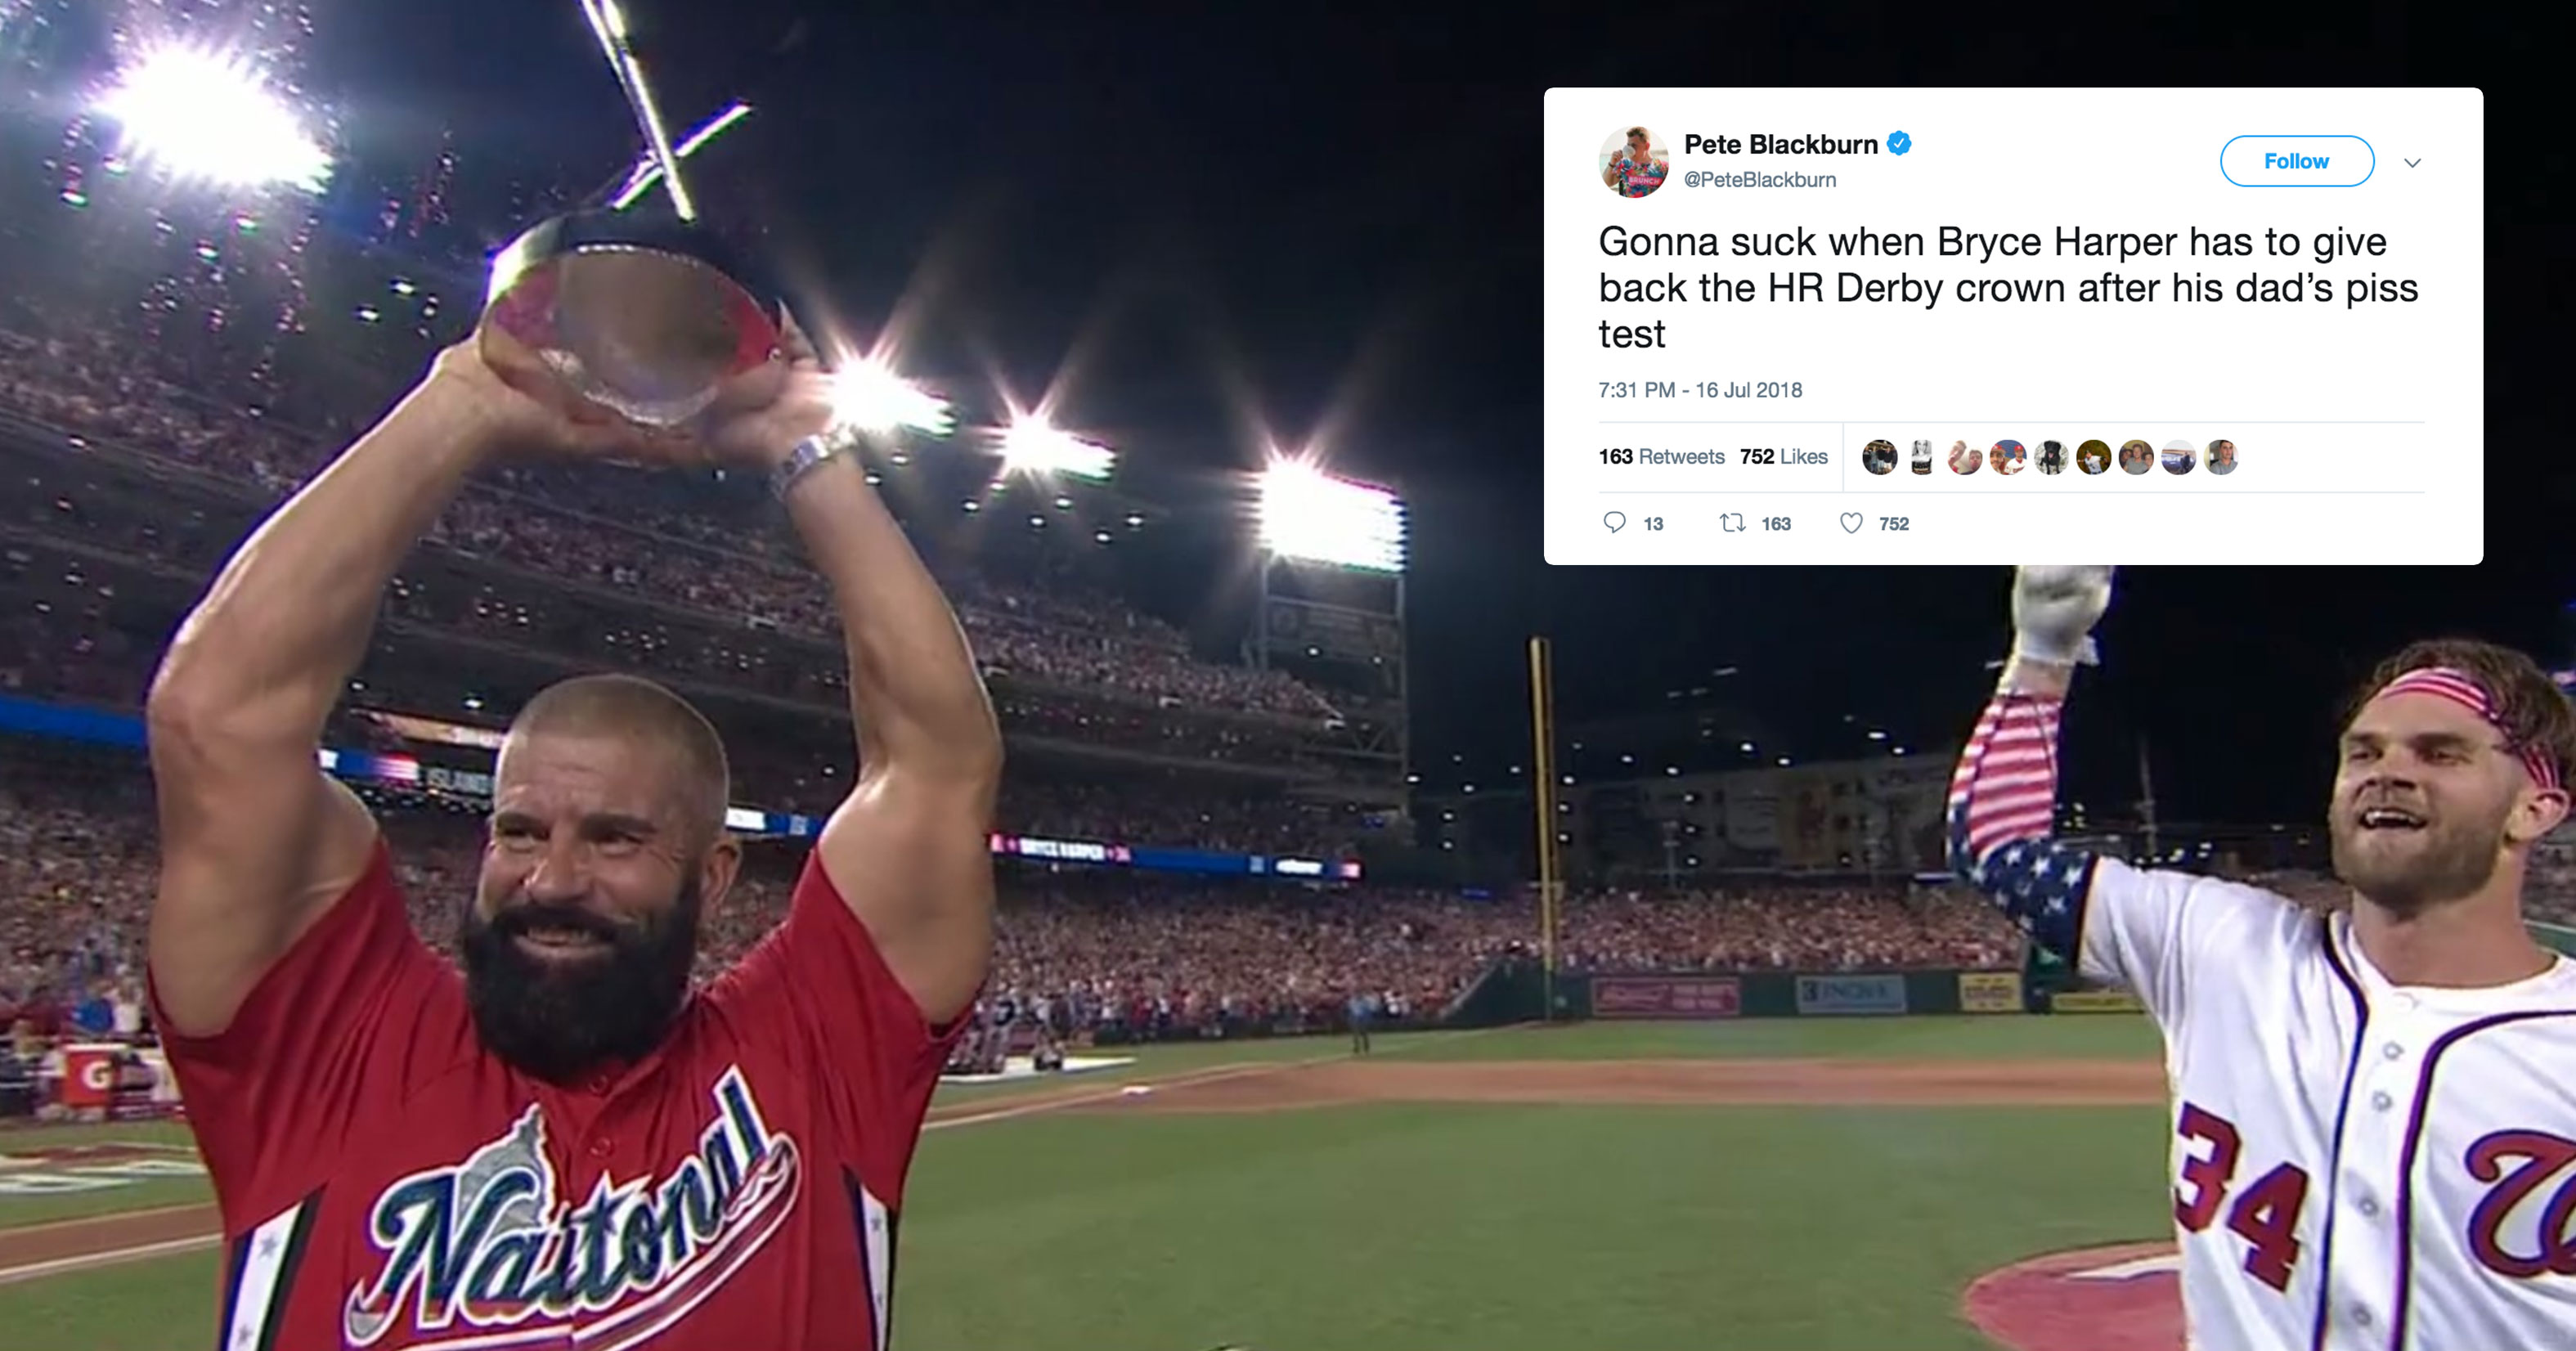 The Internet Cant Get Over How Jacked HR Derby Champ